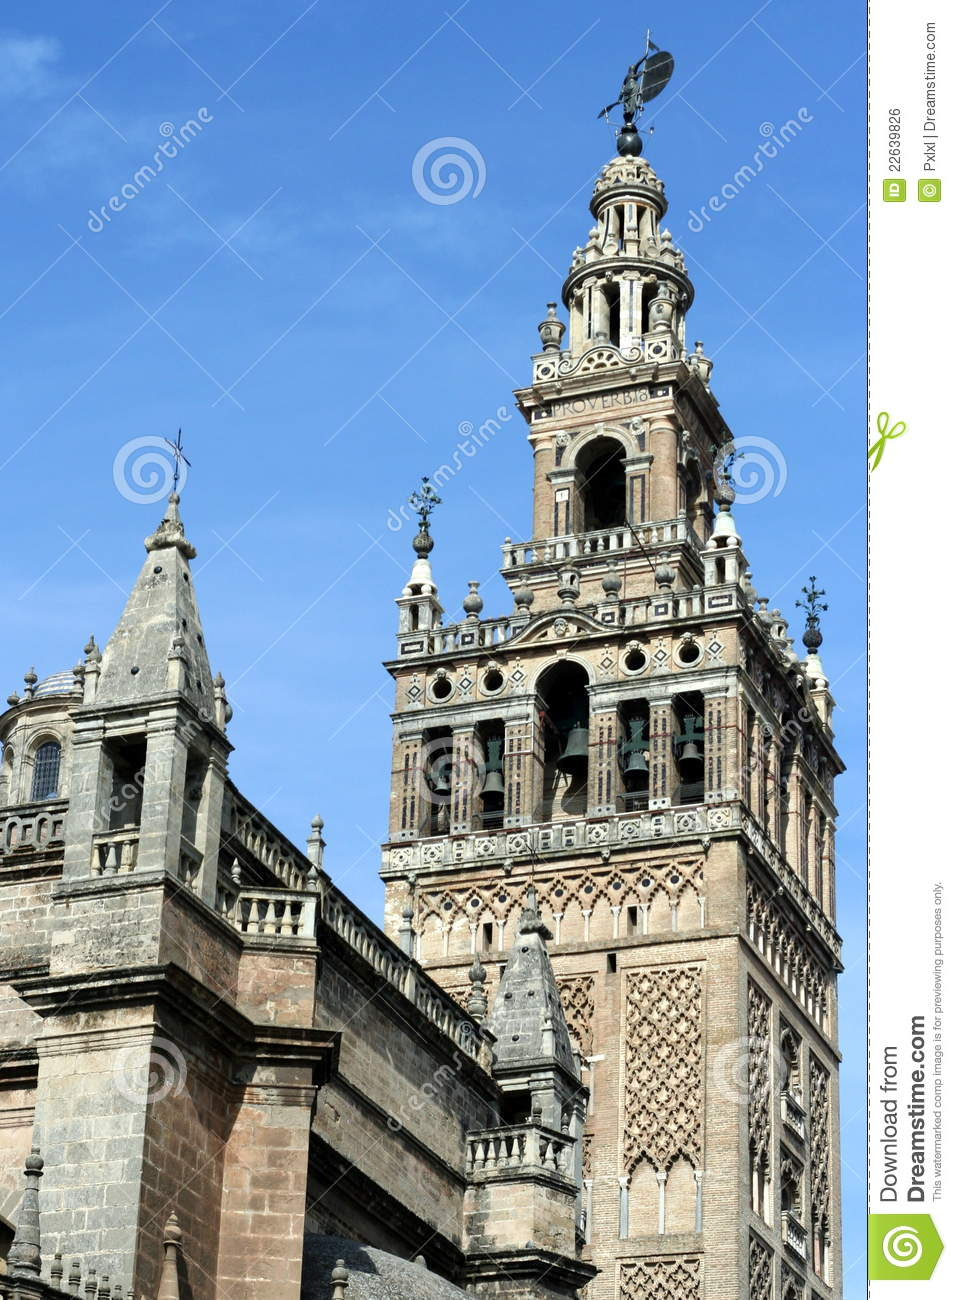 La Giralda Cathedral Belltower In Seville Royalty Free ...